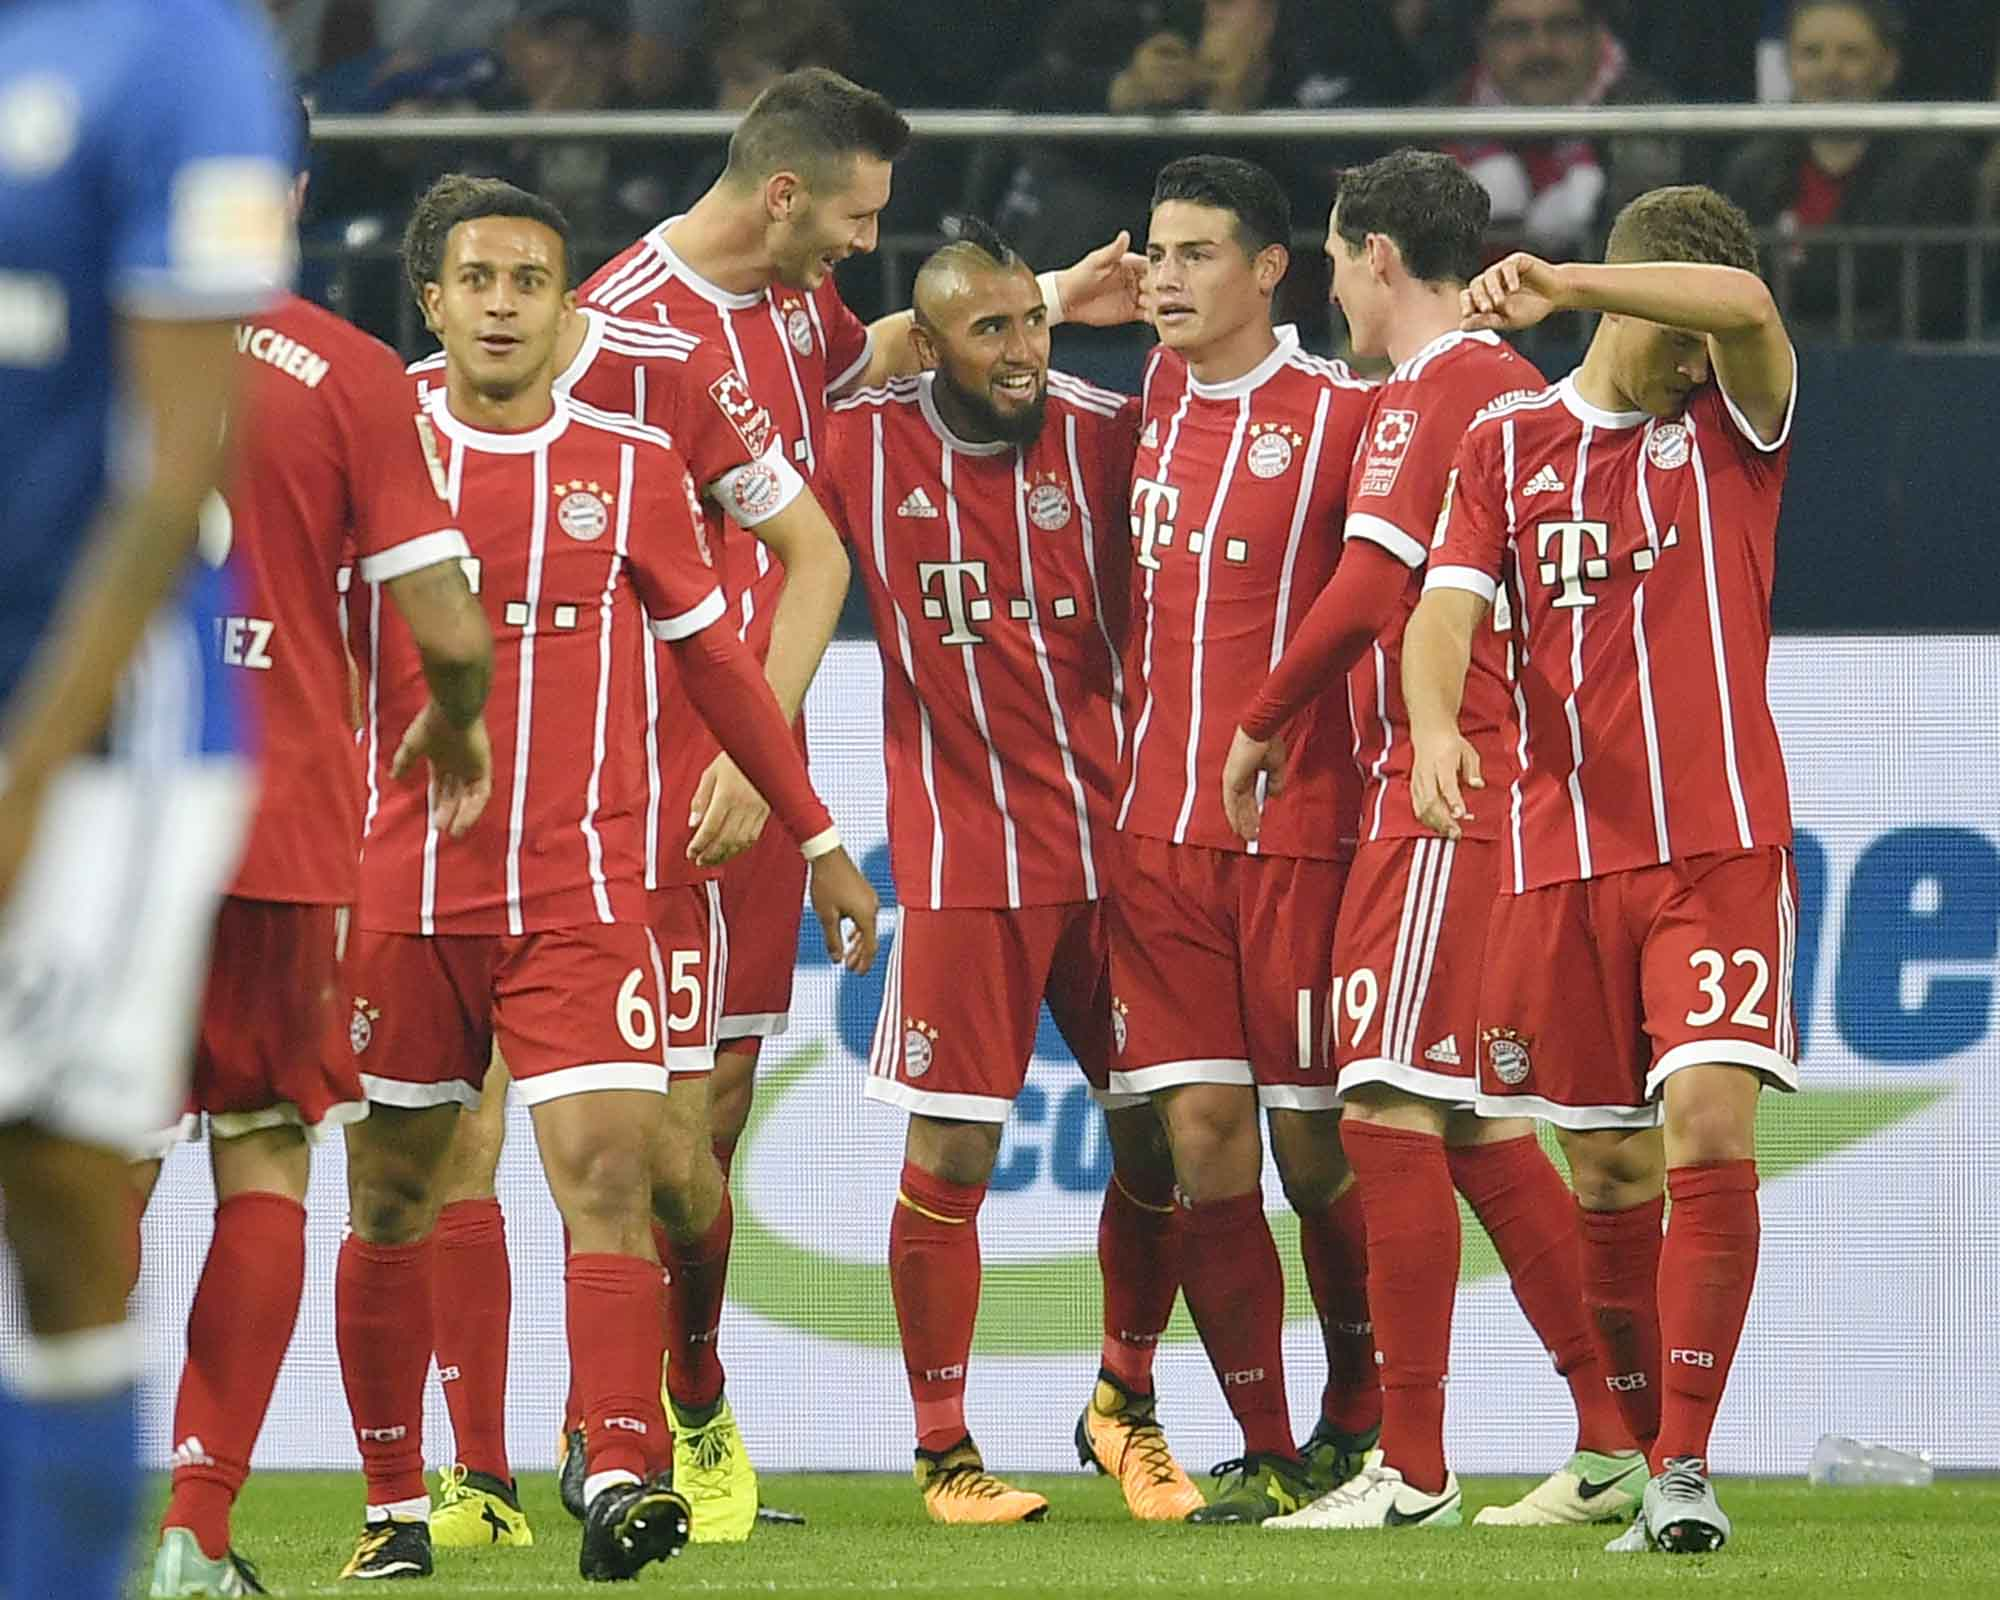 Bayern`s Arturo Vidal is celebrated after he scored the third goal for Bayern during the German Bundesliga soccer match between FC Schalke 04 and Bayern Munich at the Arena in Gelsenkirchen, Germany on Tuesday.